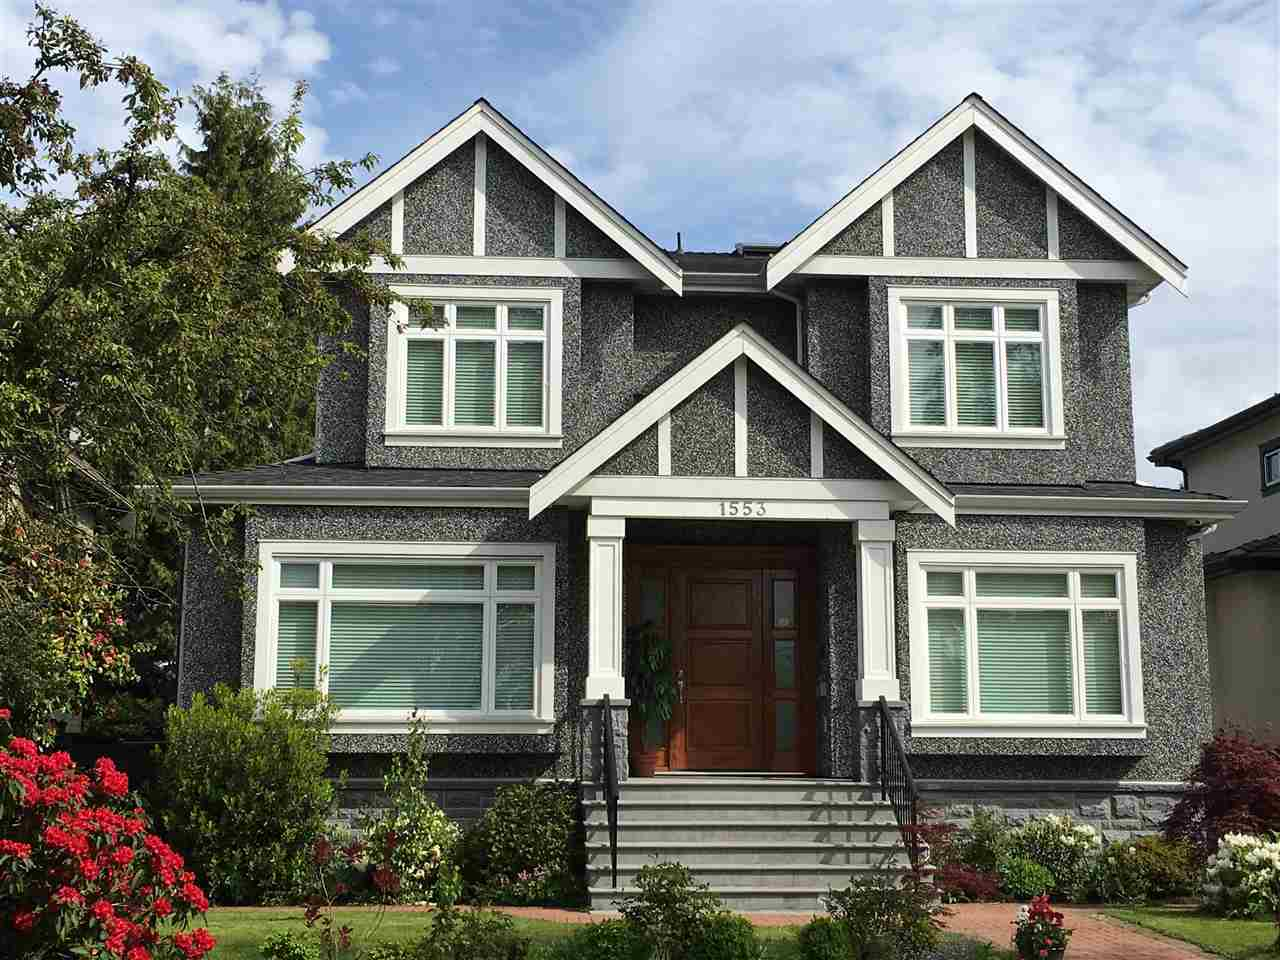 Main Photo: 1553 W 61ST AVENUE in Vancouver: South Granville House for sale (Vancouver West)  : MLS® # R2062501